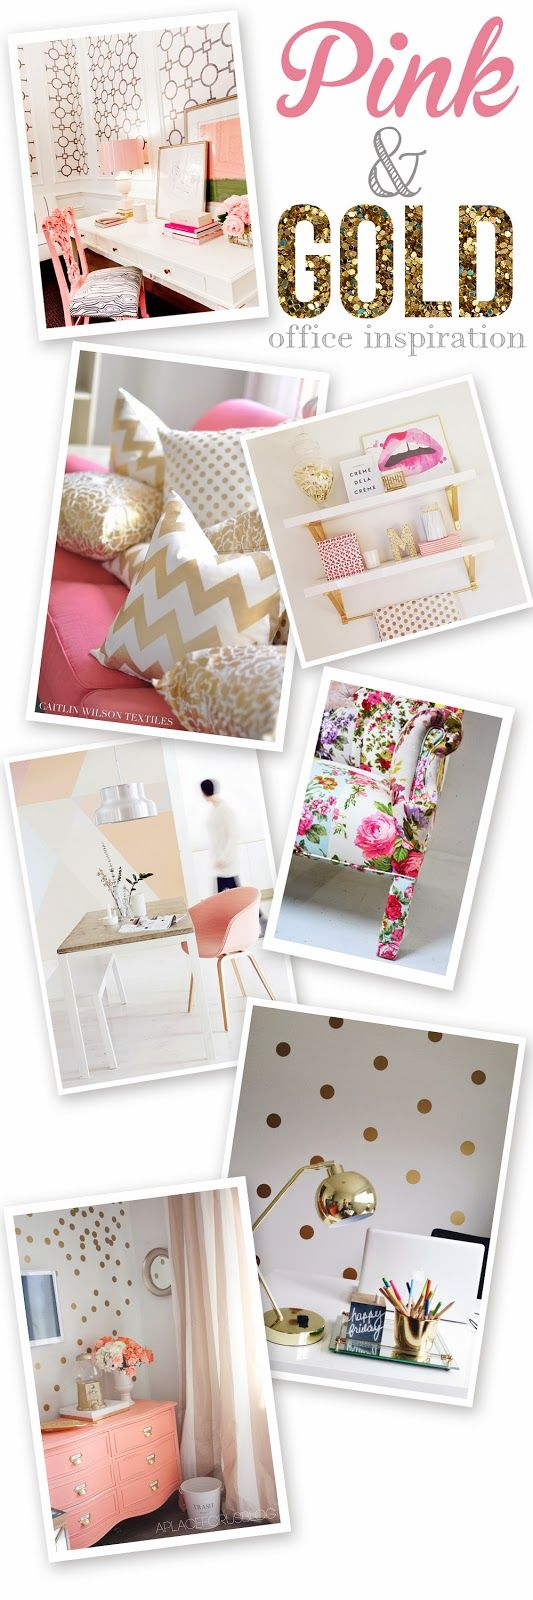 Pink and gold room design great for bedroom or office